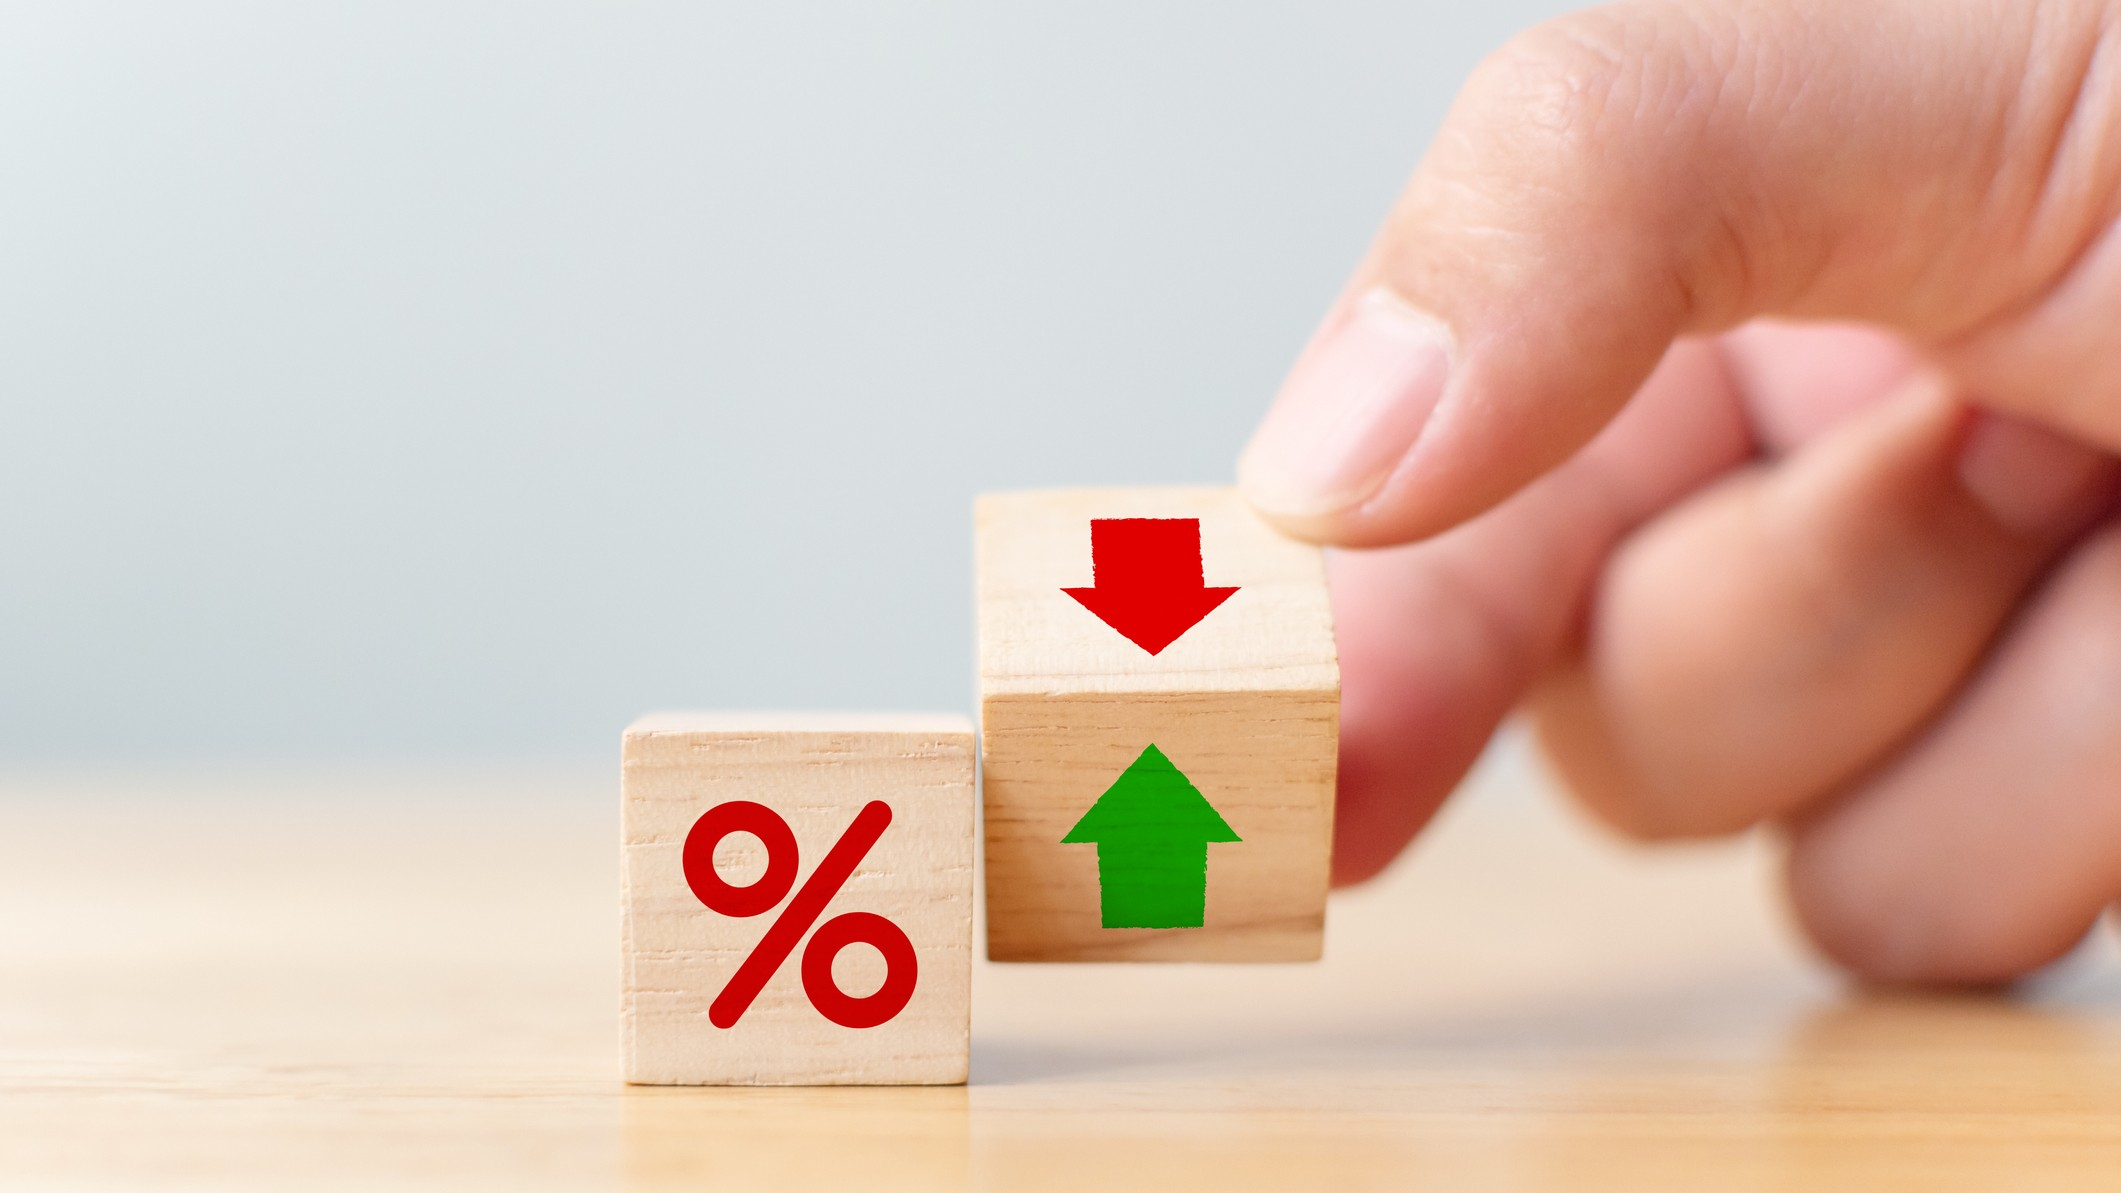 A hand moves a building block from green arrow to red, indicating negative interest rates